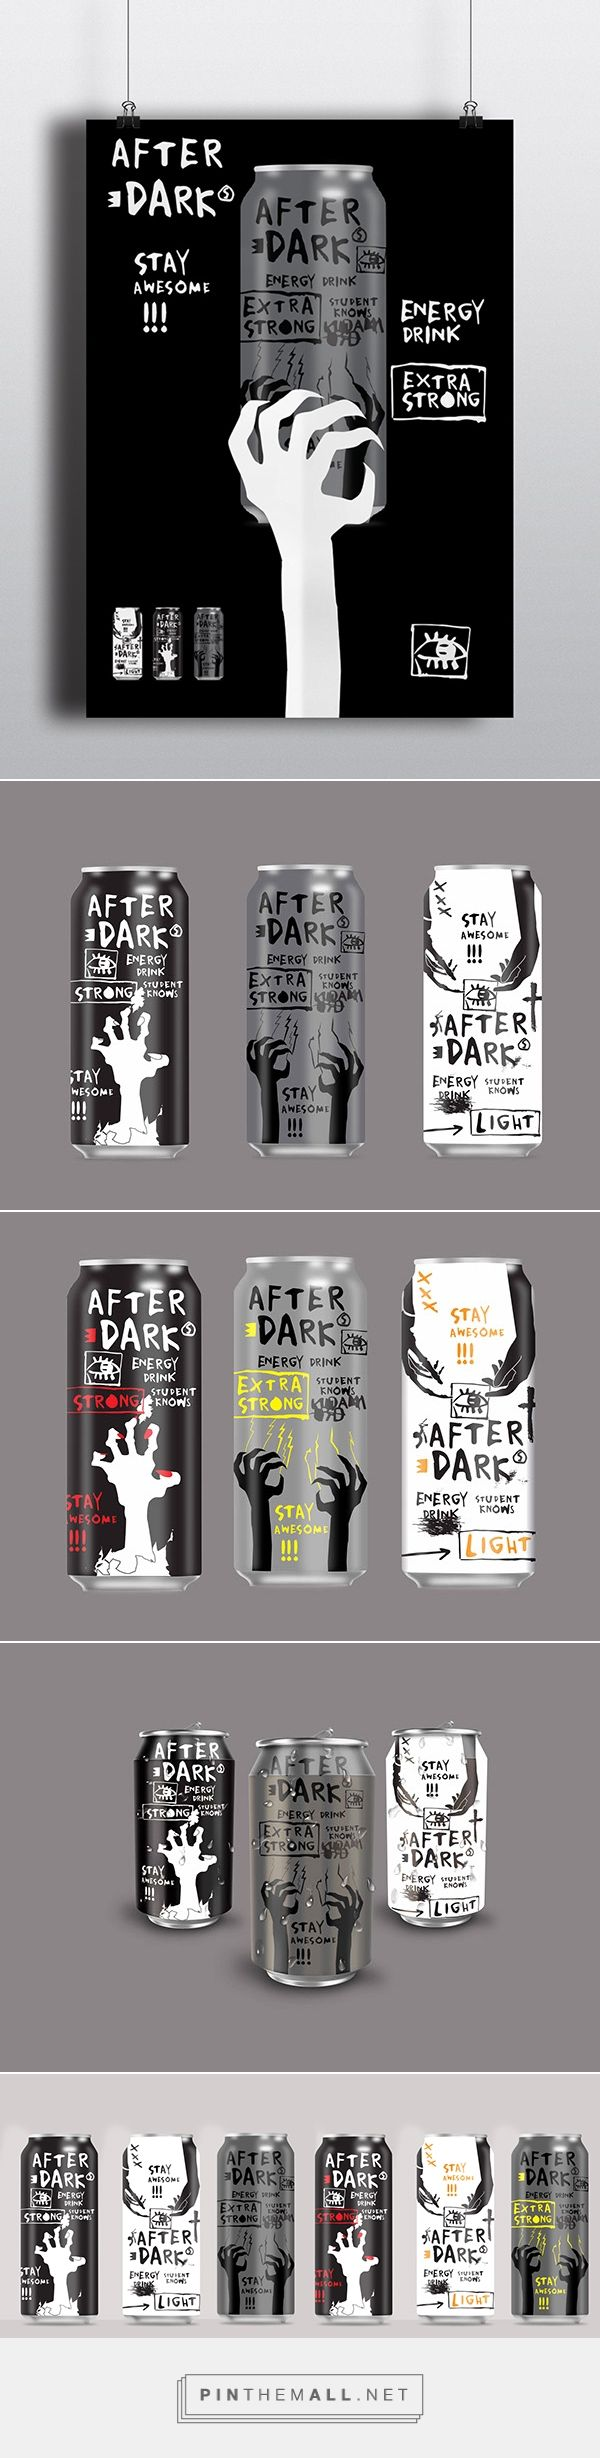 After Dark energy drink (student work) designed by Ana Pesic. Pin curated by #SFields99 #packaging #design